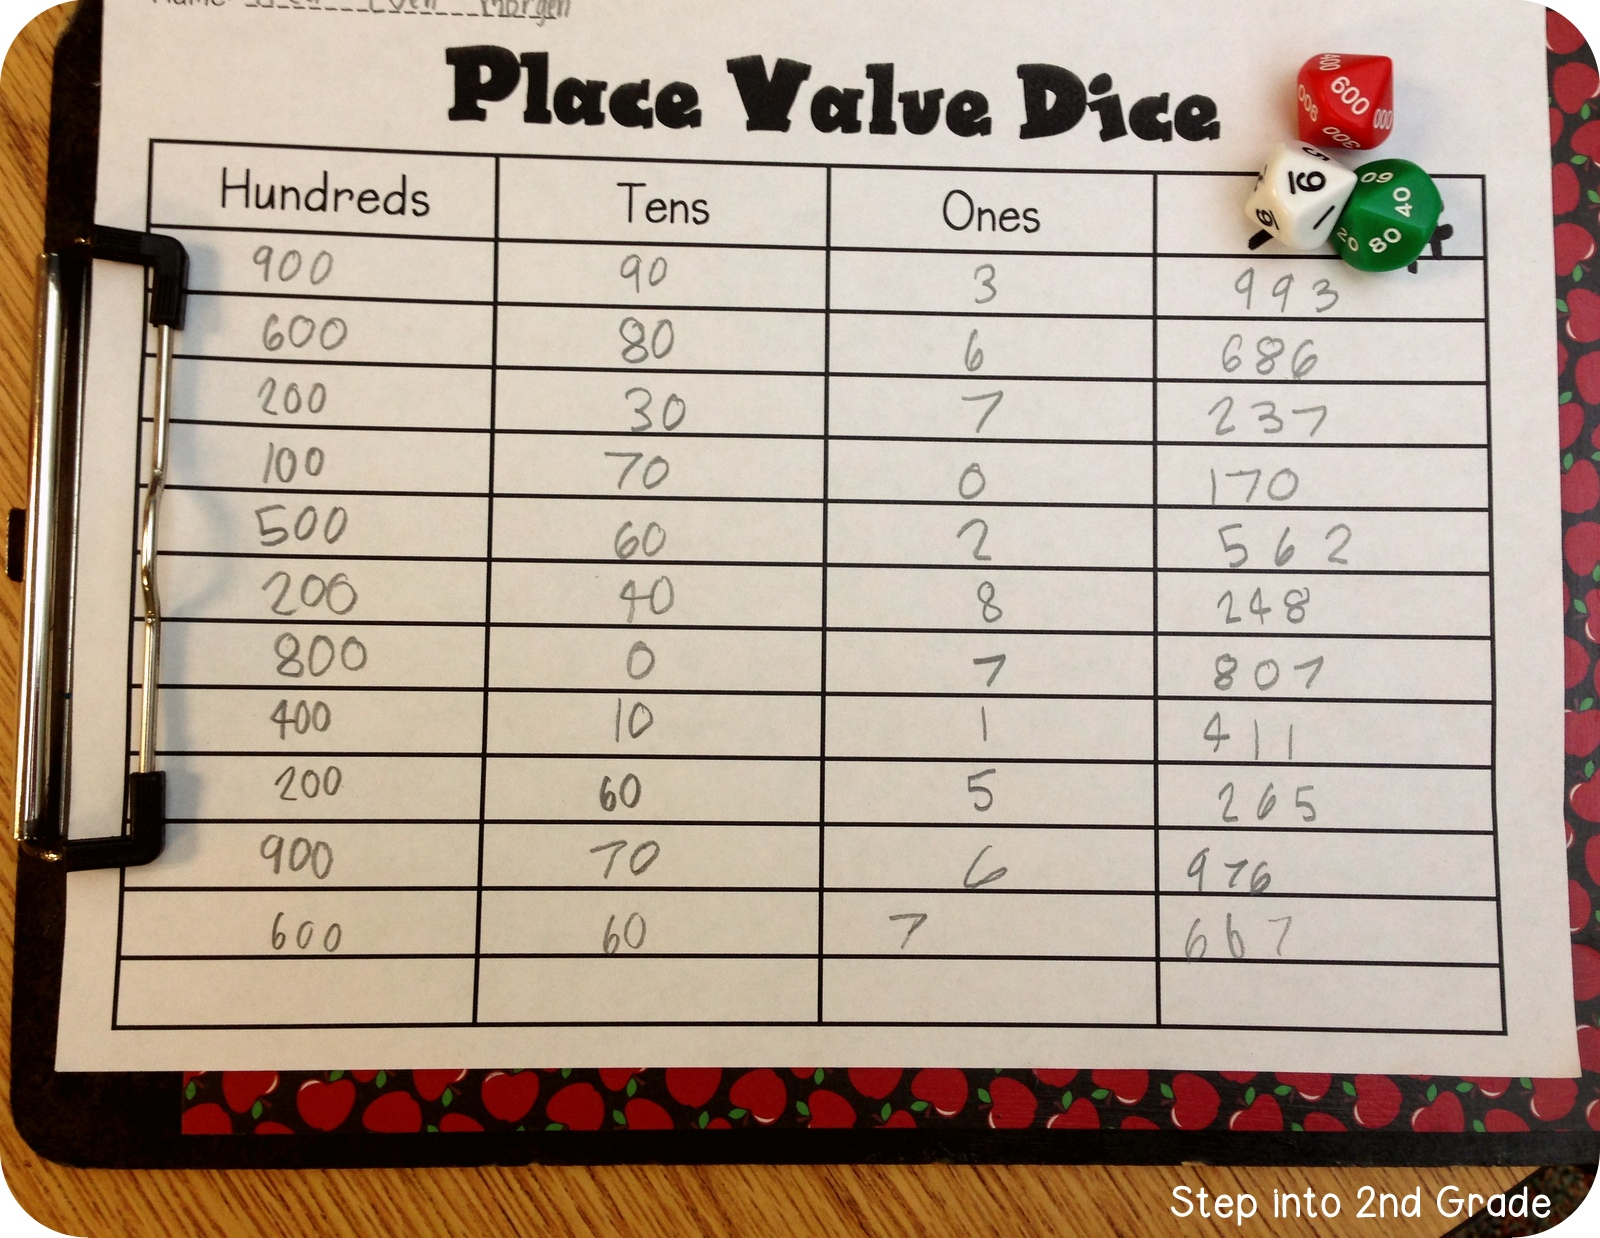 Step into 2nd Grade with Mrs. Lemons: More Mudge and Place ...